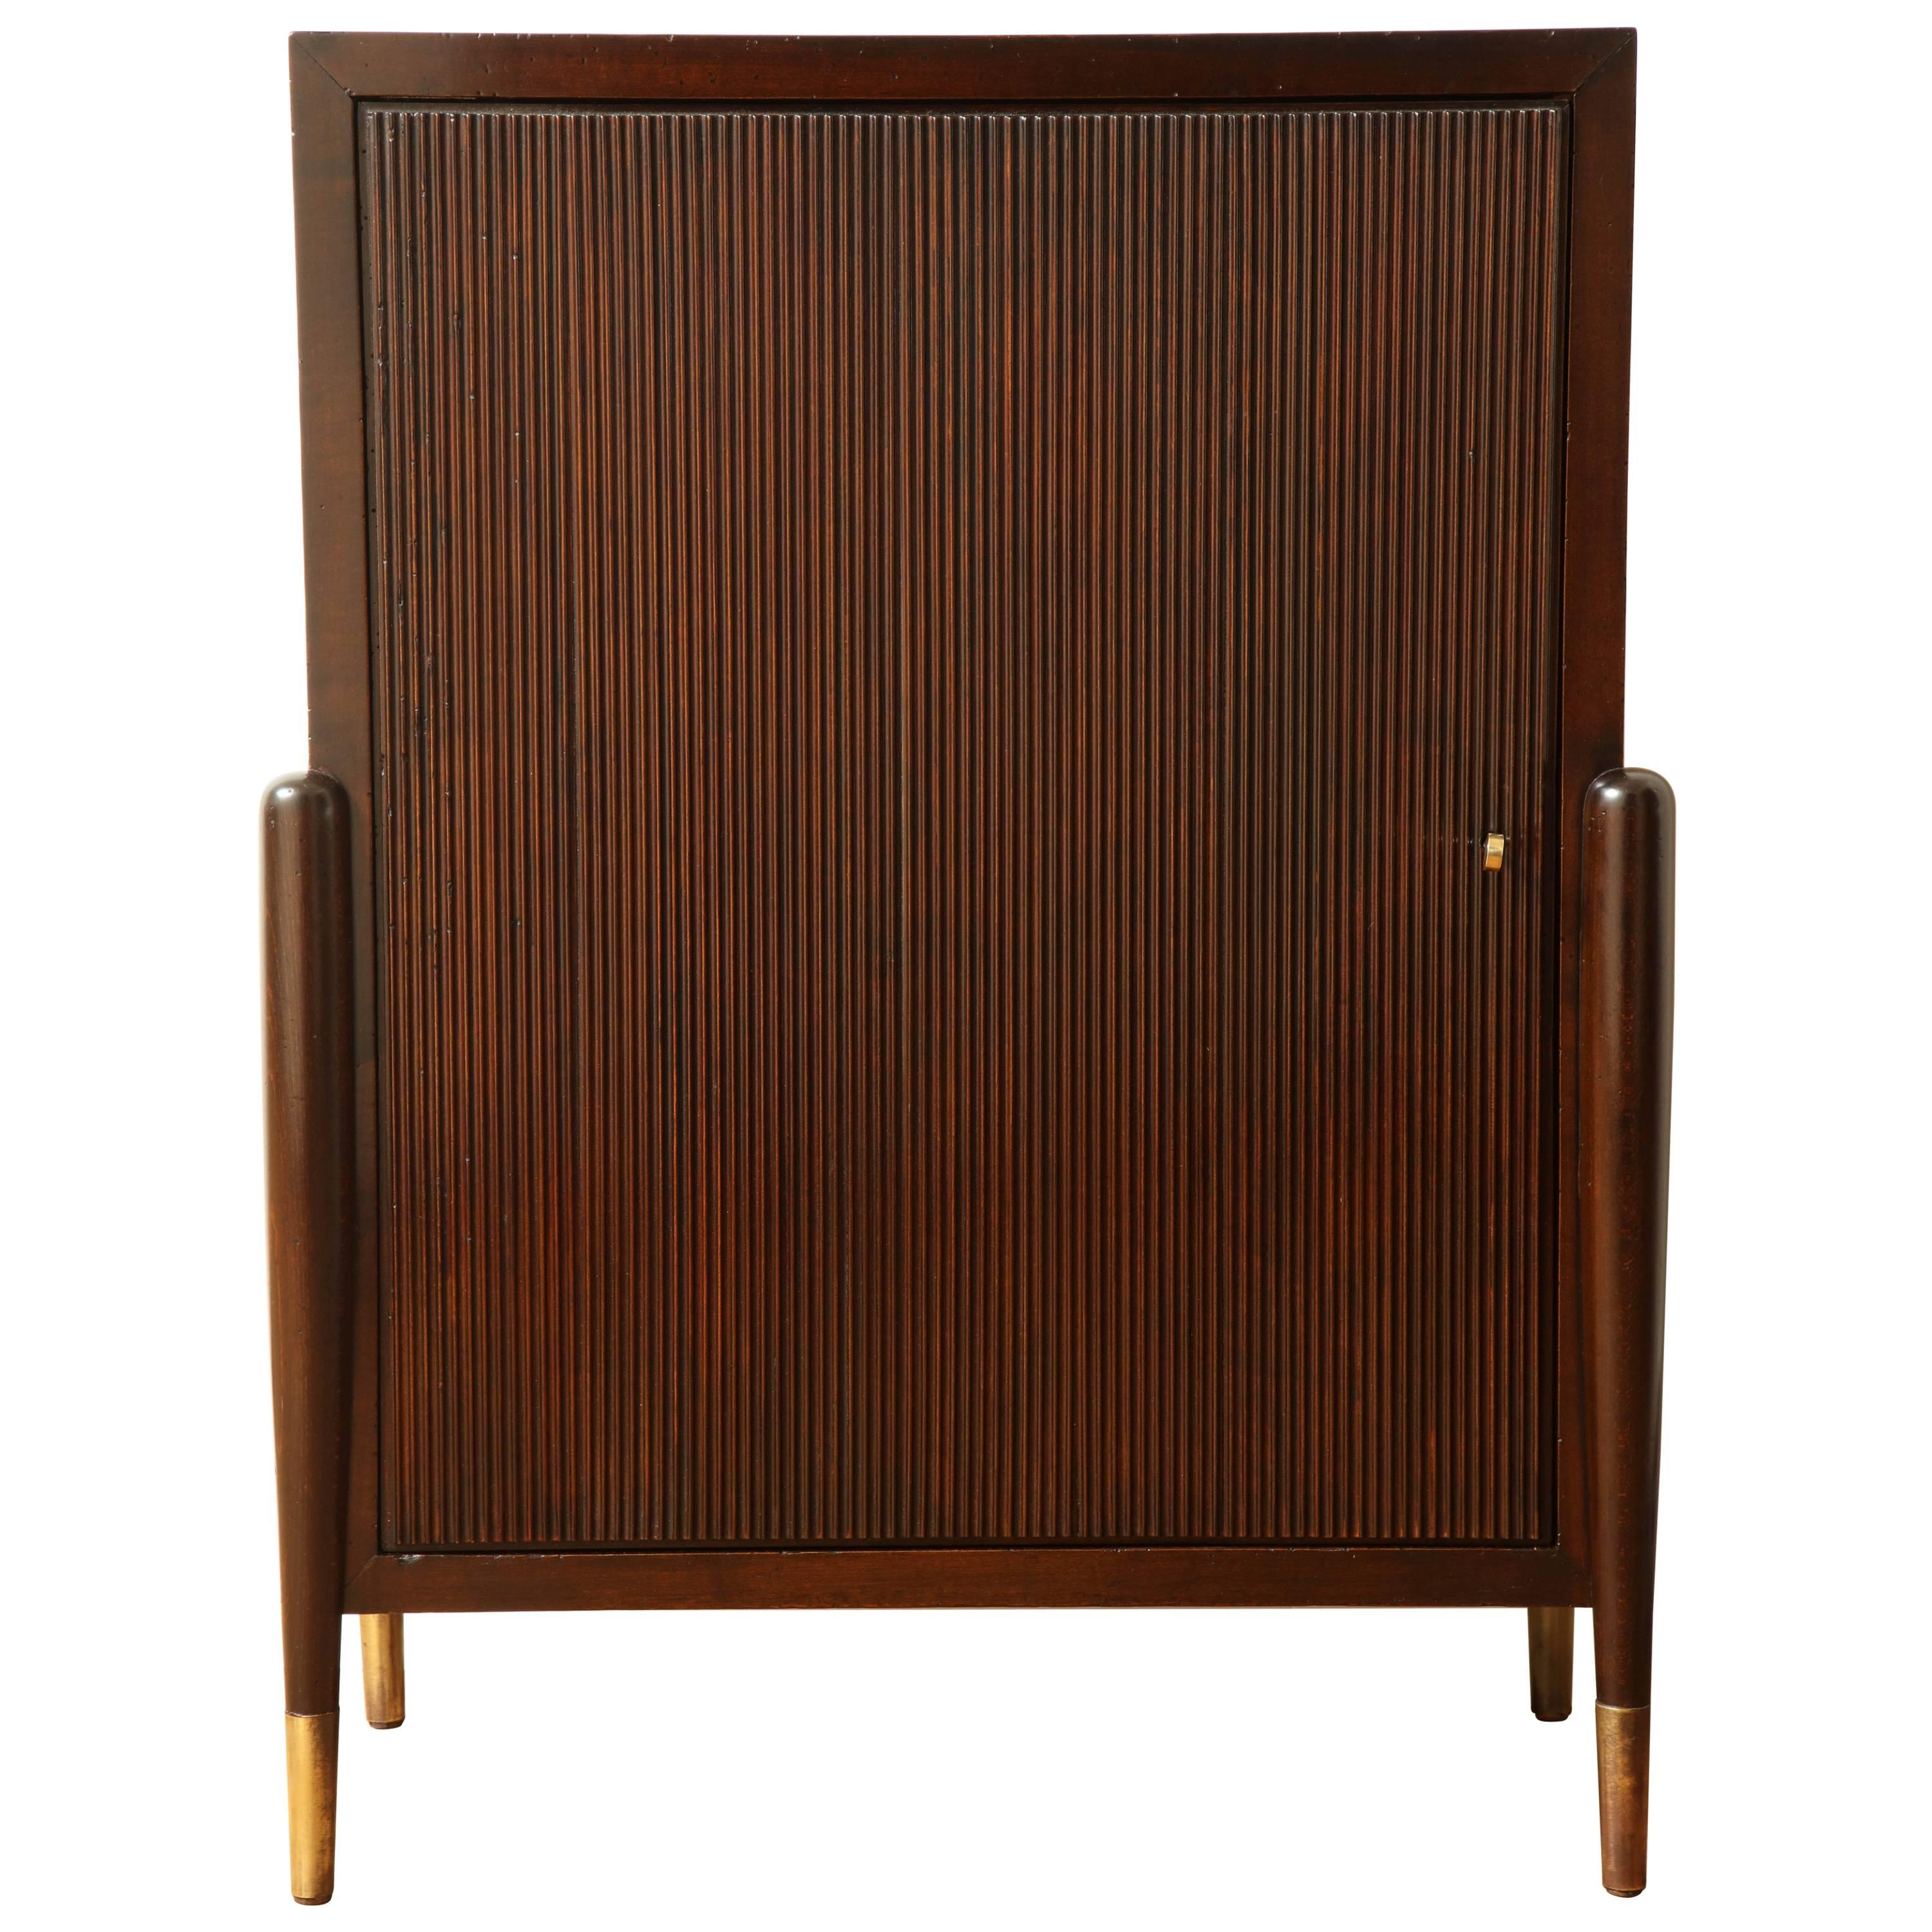 Art Deco Mahogany Cabinet with Ribbed Door and Interior Shelves Italy 1940s For Sale  sc 1 st  1stDibs & Art Deco Mahogany Cabinet with Ribbed Door and Interior Shelves ...